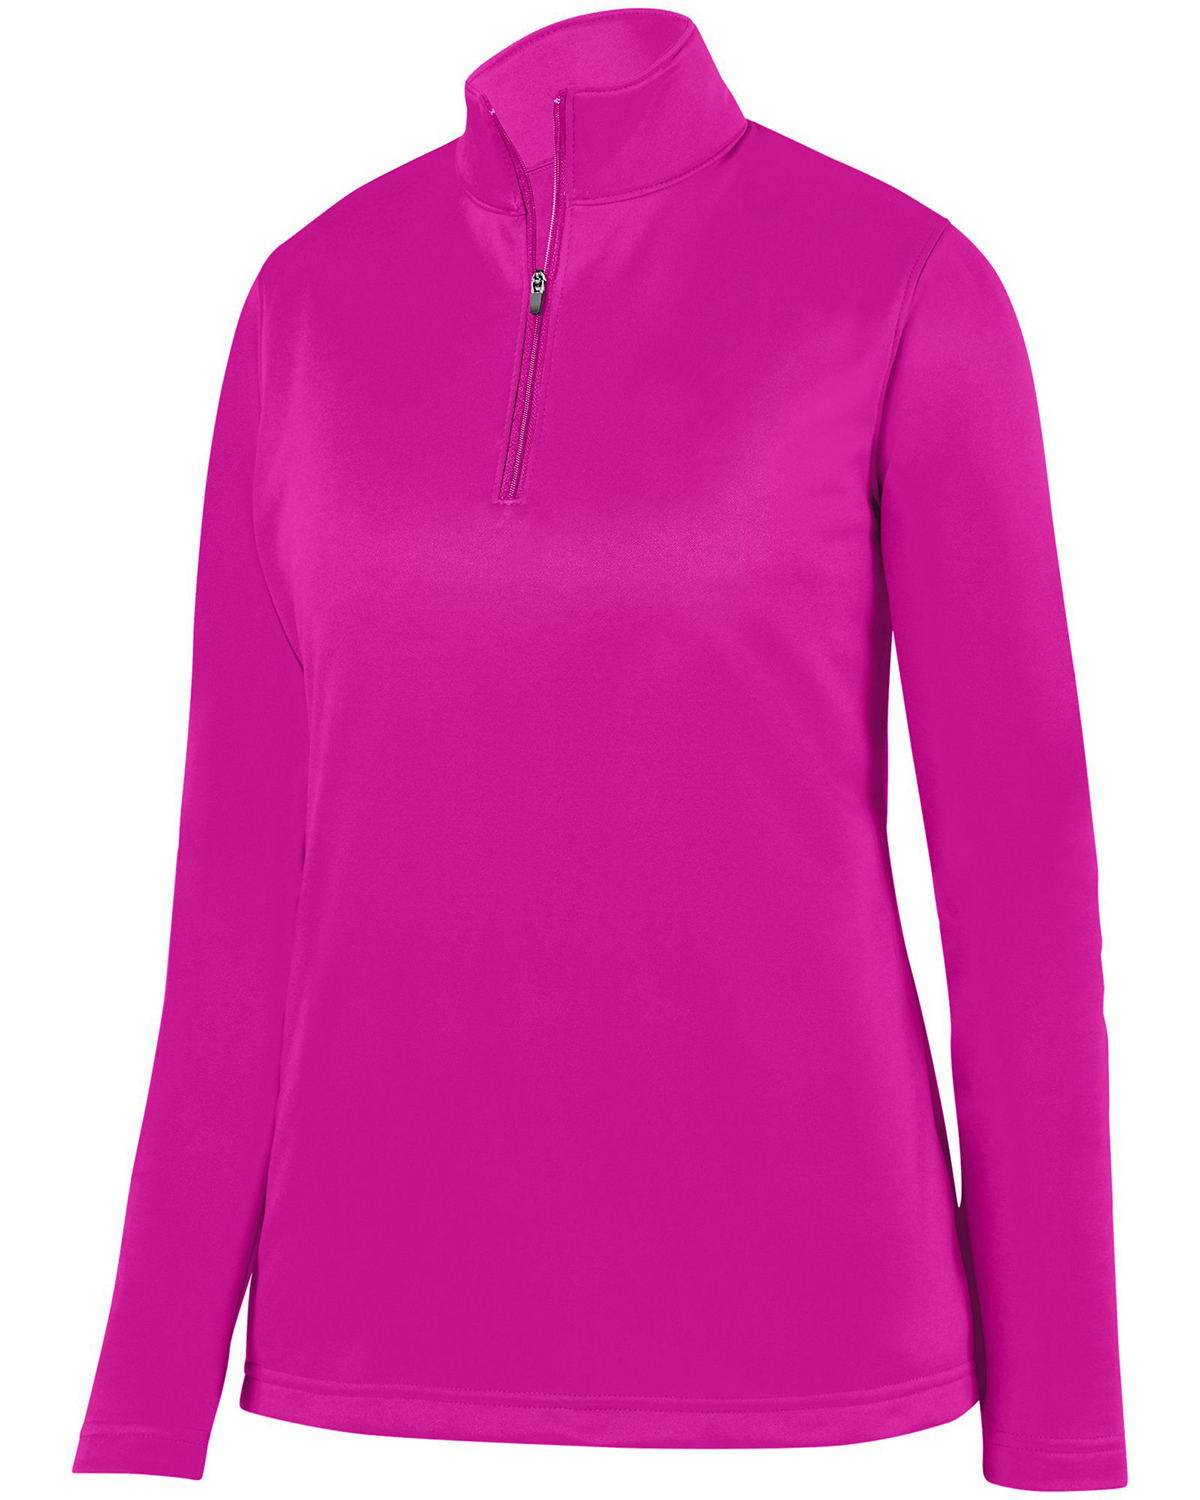 Augusta Drop Ship AG5509 - Ladies Wicking Fleece Quarter-Zip Pullover